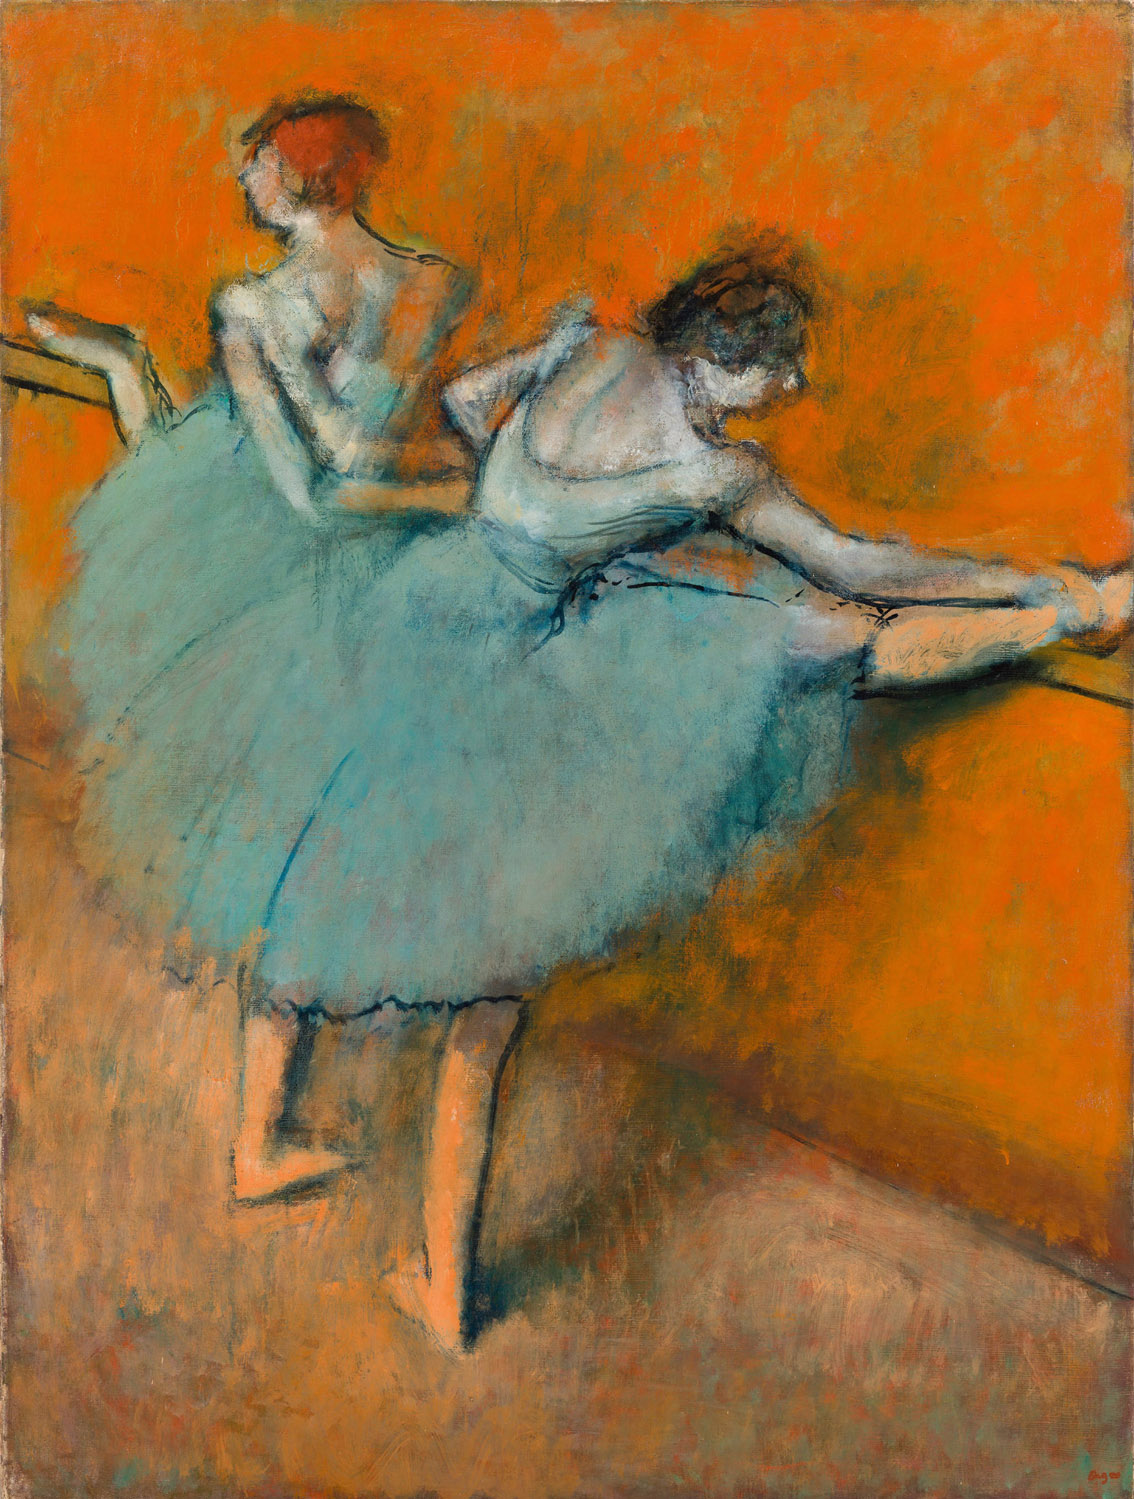 Bailarinas en la barra, por Hilaire-Germain-Edgar Degas, h. 1900, óleo sobre lienzo, 130,2 x 97,8 cm, The Phillips Collection, Washington, D.C., adquirido en 1944.